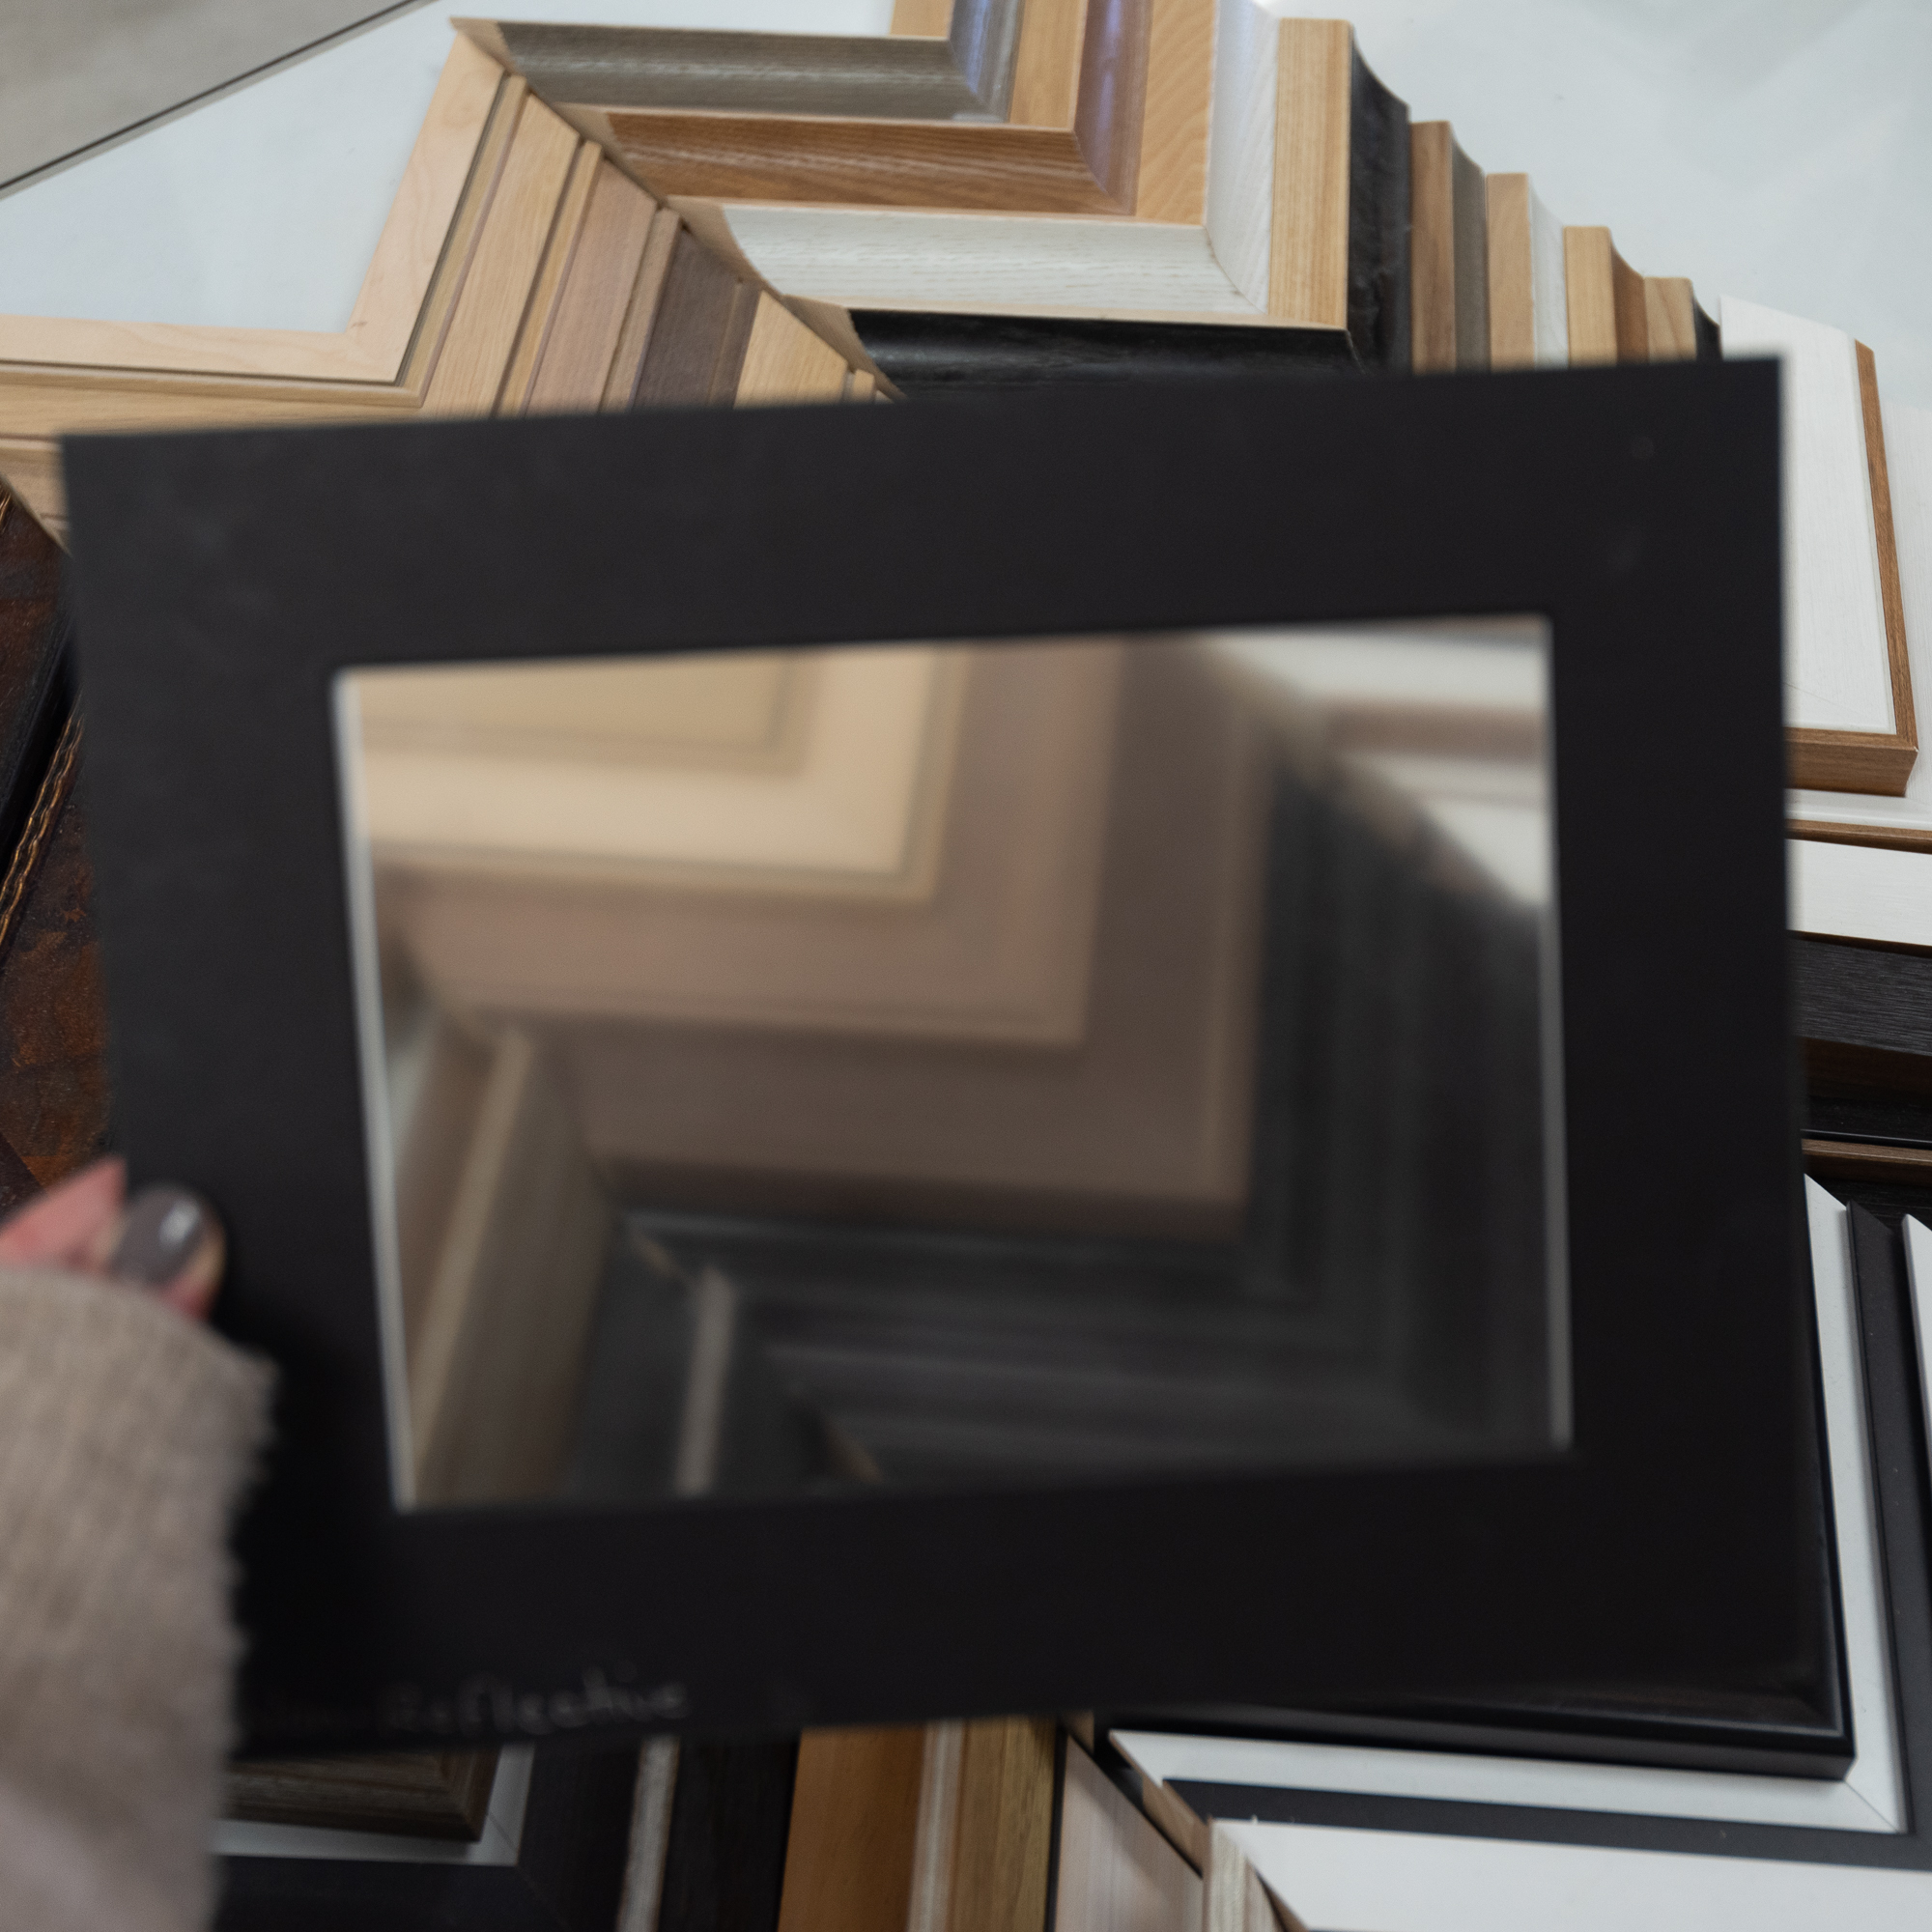 Traditional Non-Reflective Glass - blurs the subject when placed at a distance